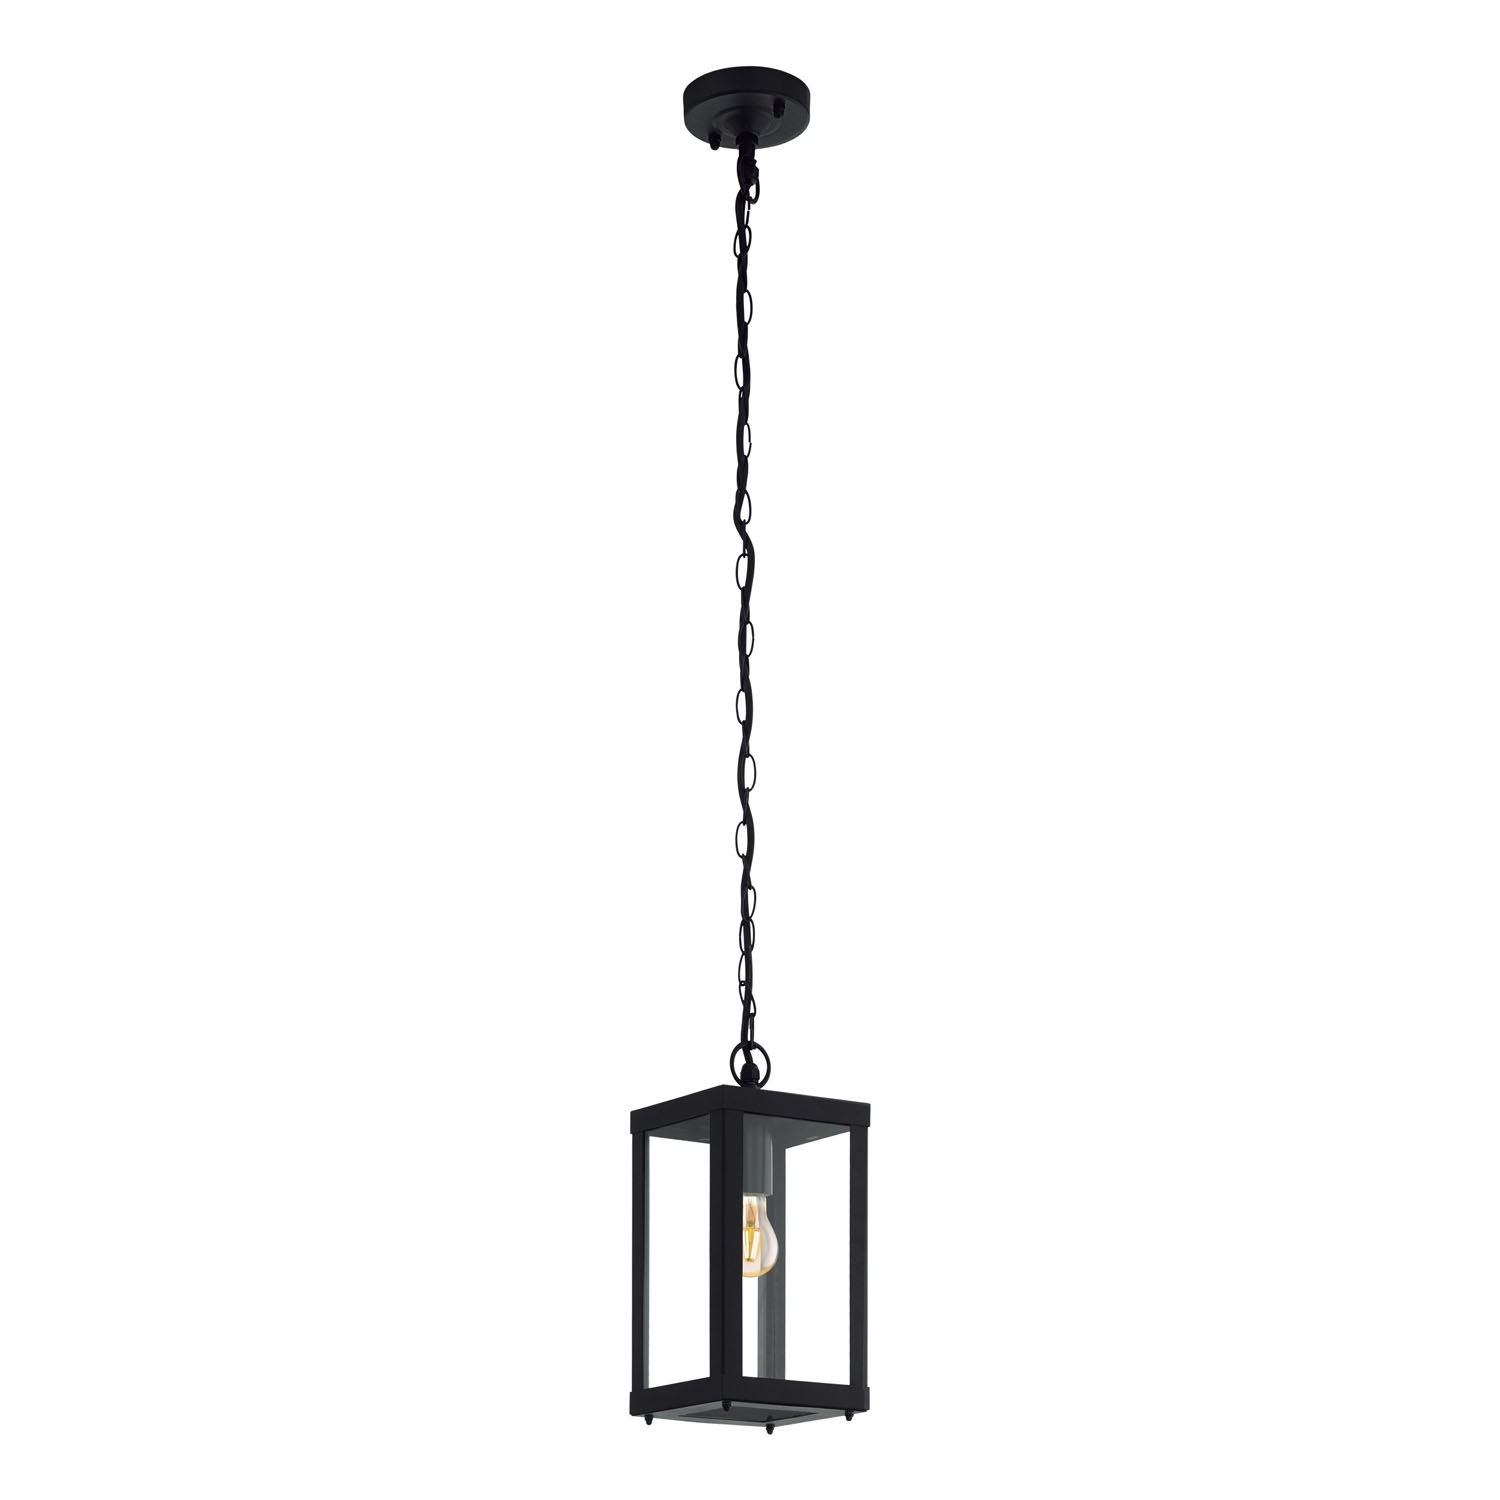 Image of Eglo Alamonte Outdoor Pendant Light